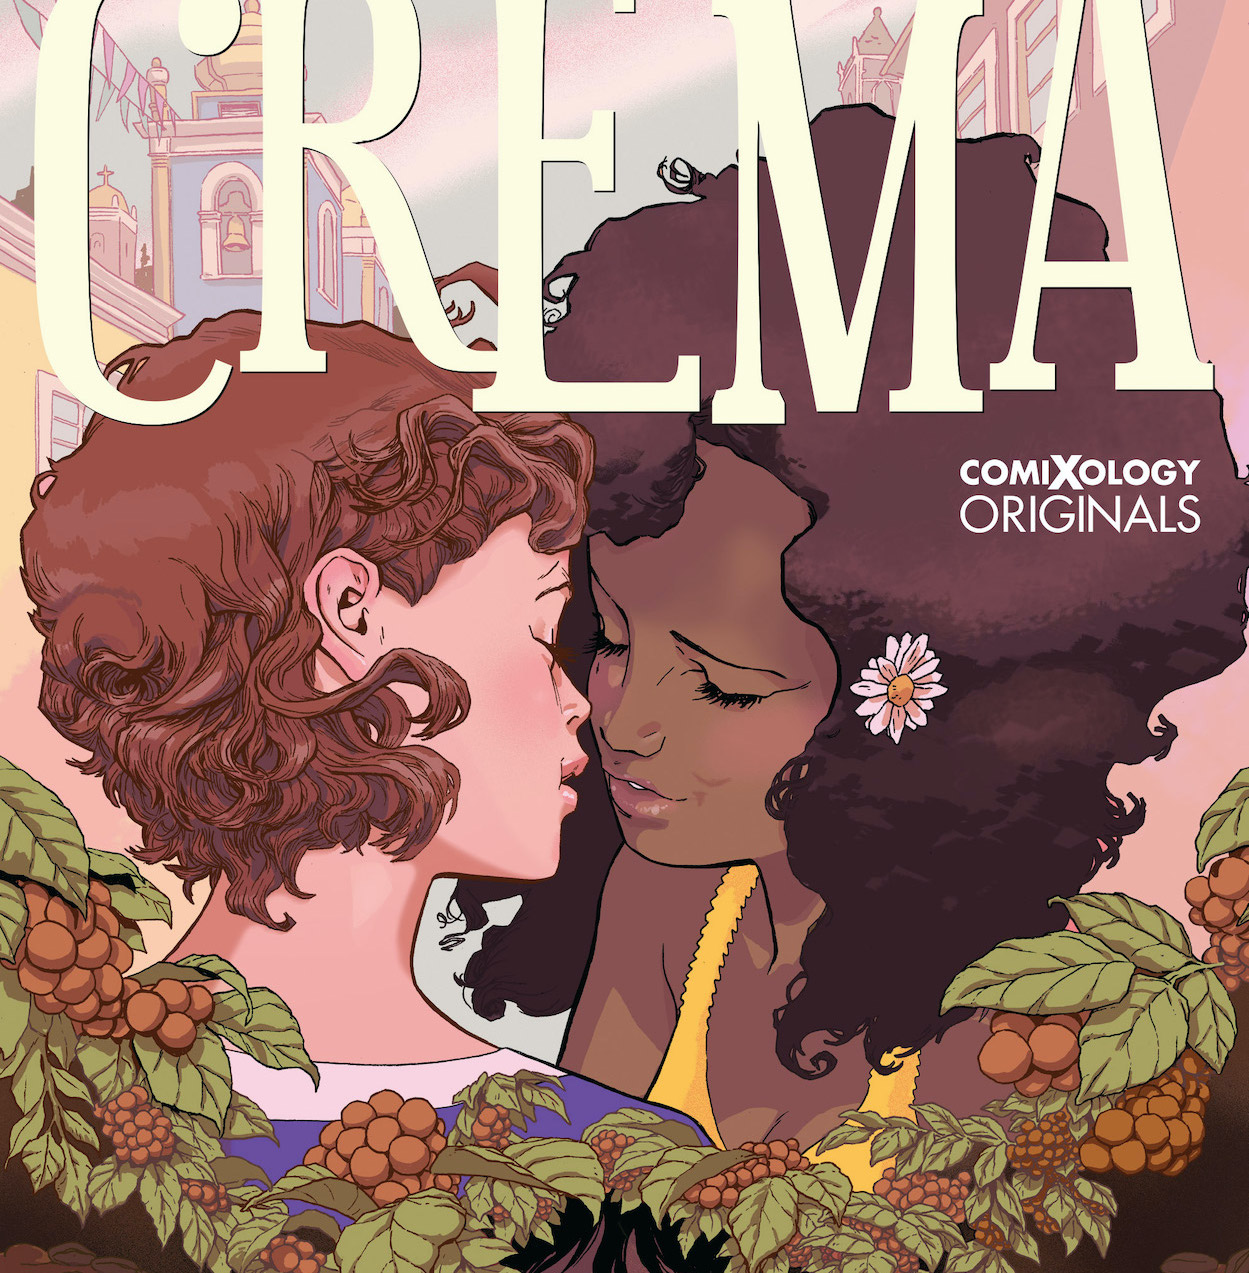 'CREMA' offers a freshly-brewed romance story, but over pours